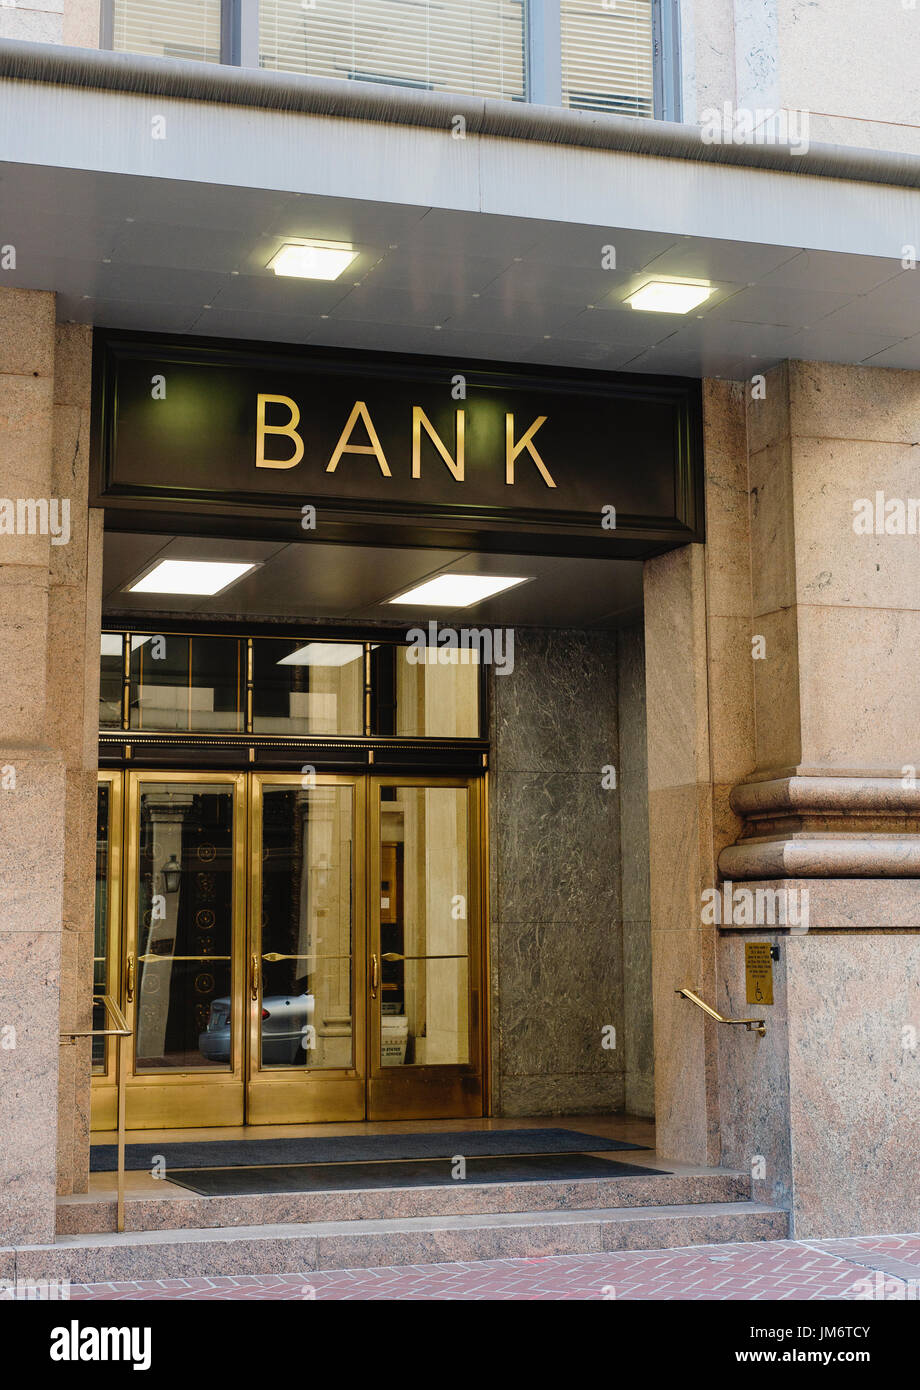 The entrance to a bank. - Stock Image